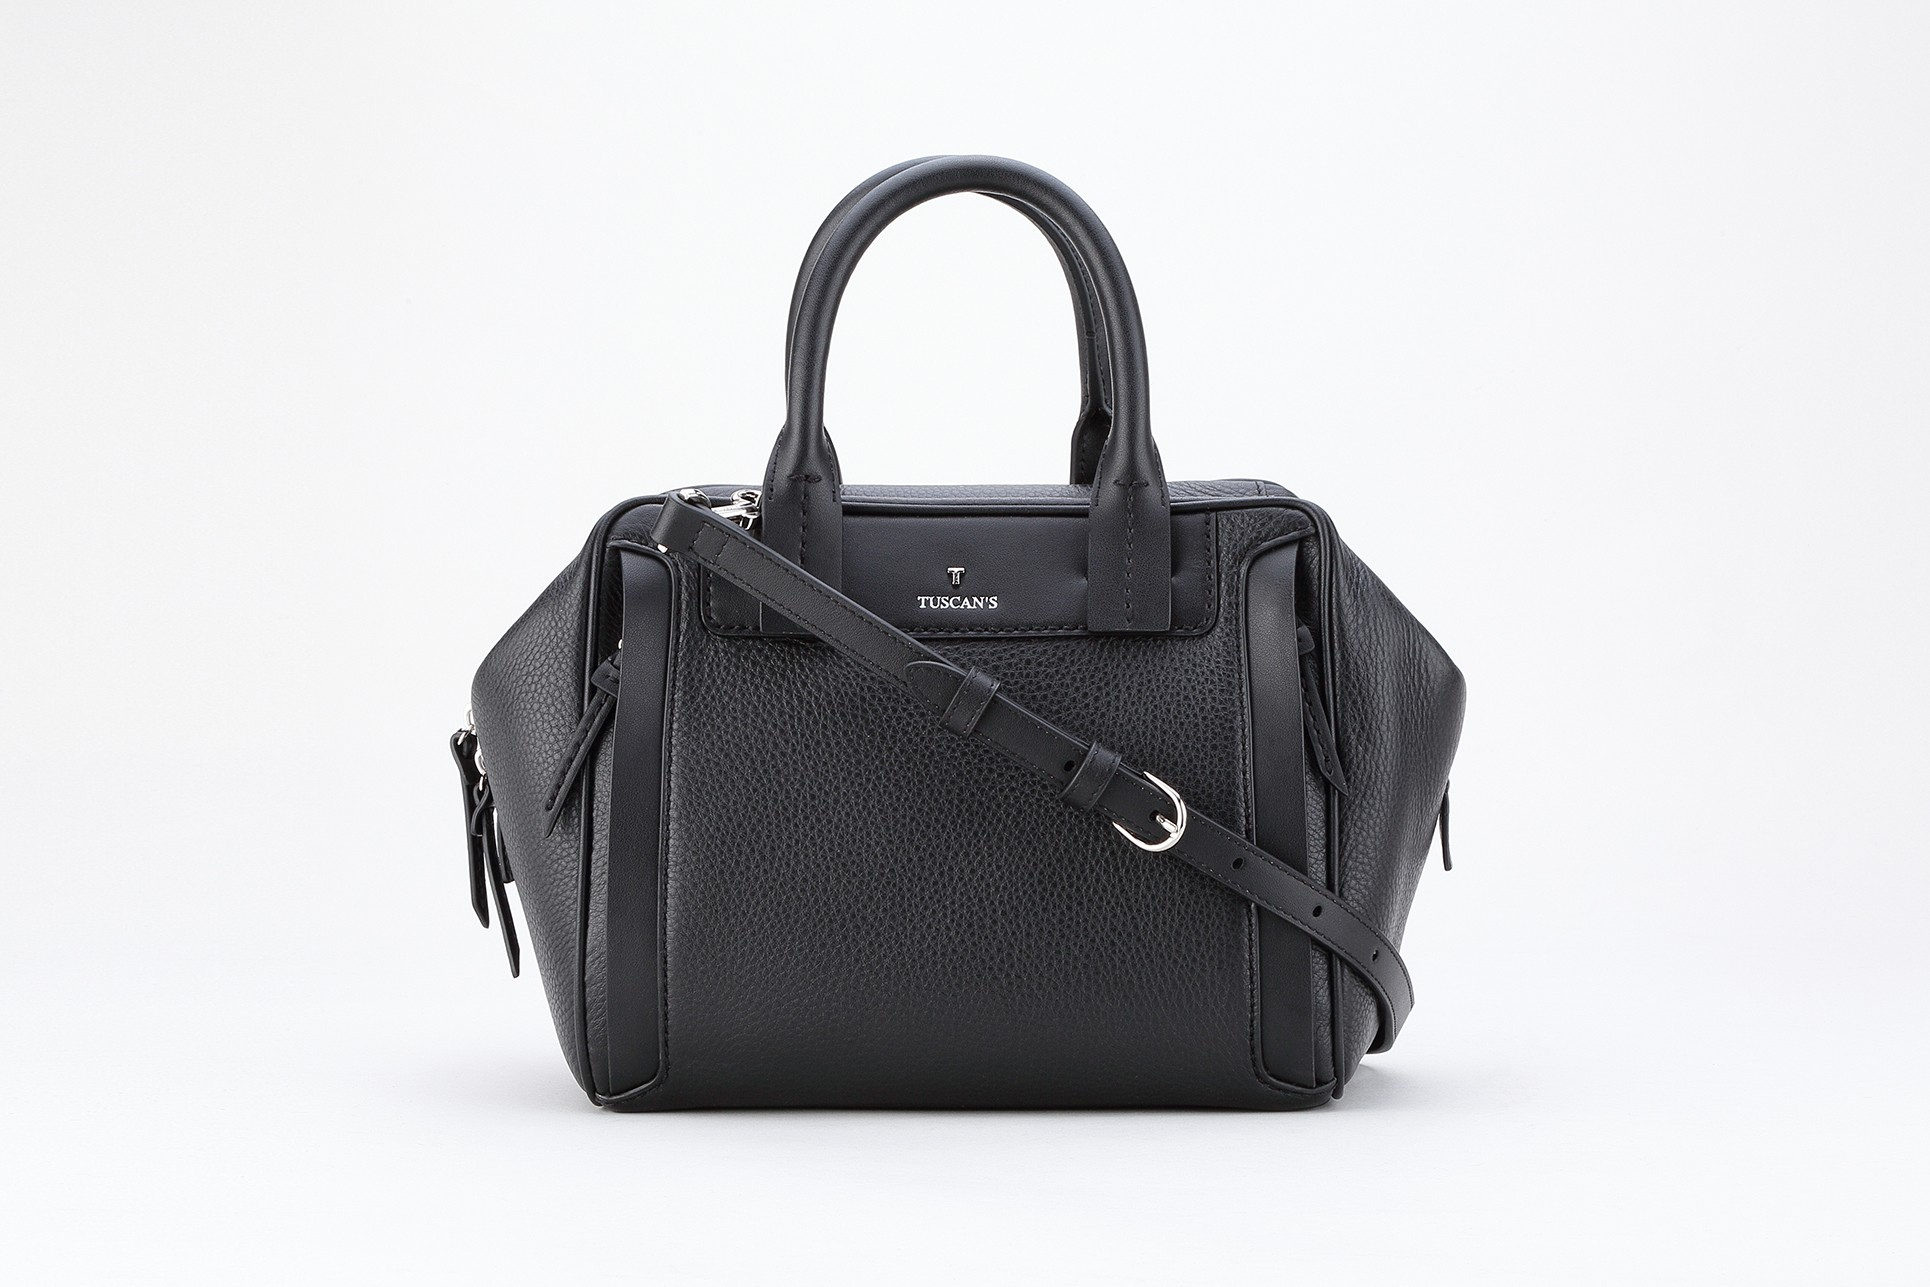 NAPOLI Satchel Bag